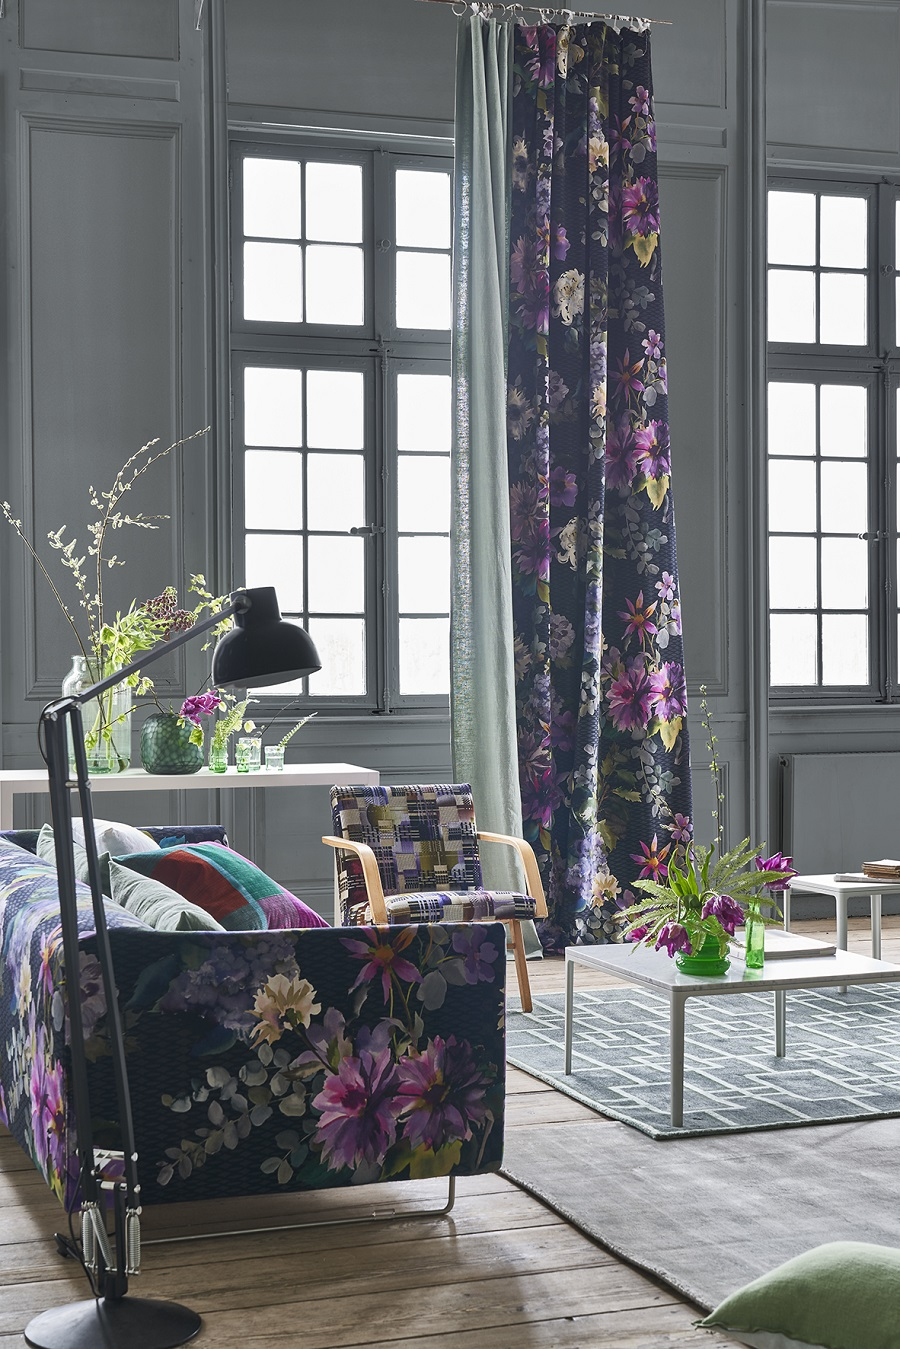 The New Jaipur Collection from Designers Guild and Memories of India